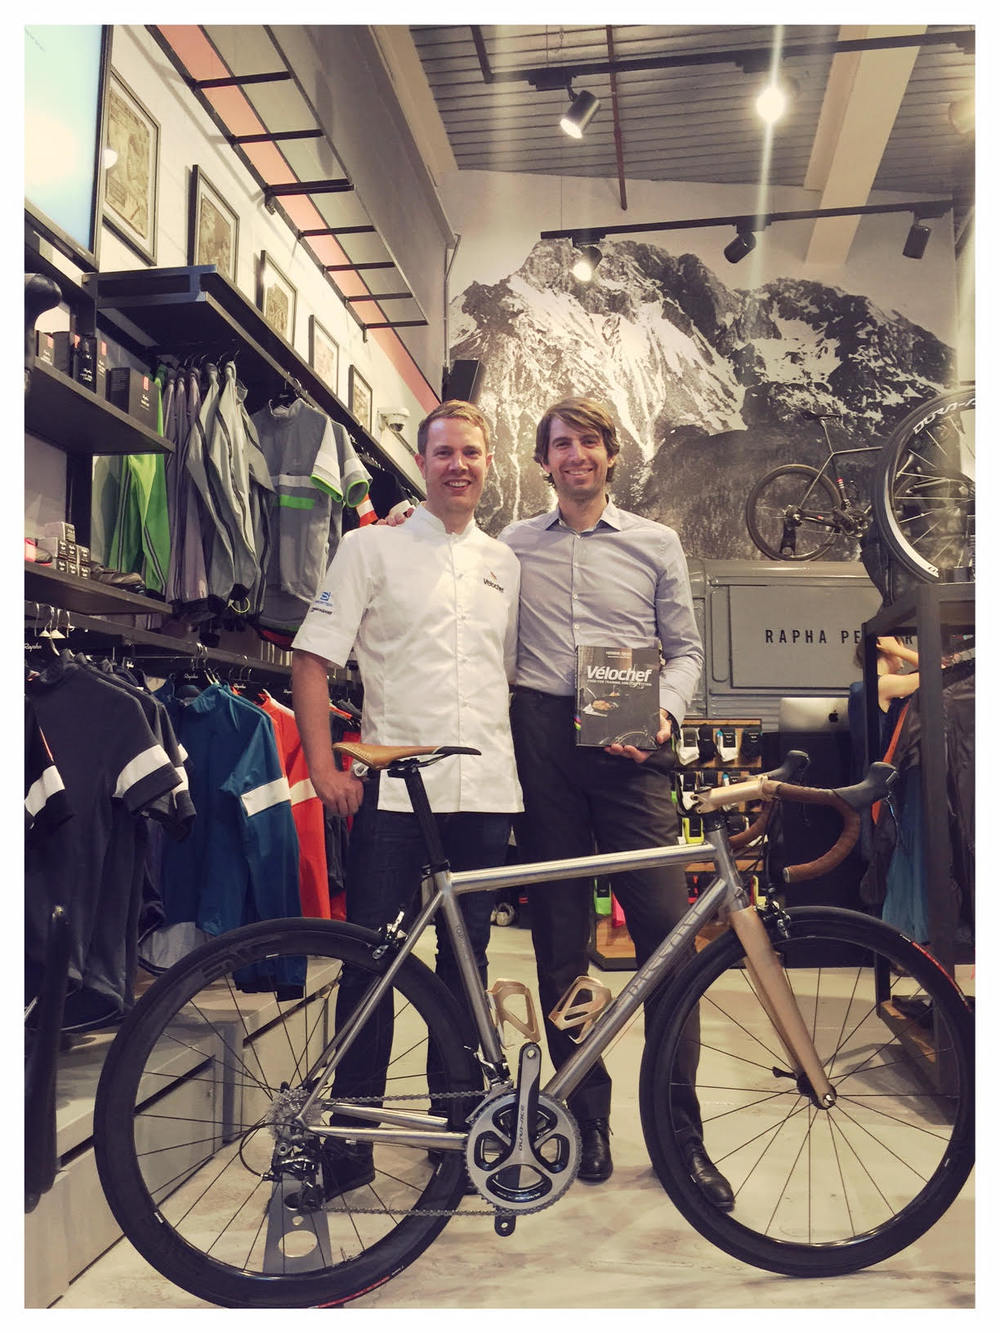 Henrik Orre with Passoni owner Matteo Cassina at the Rapha Store in London